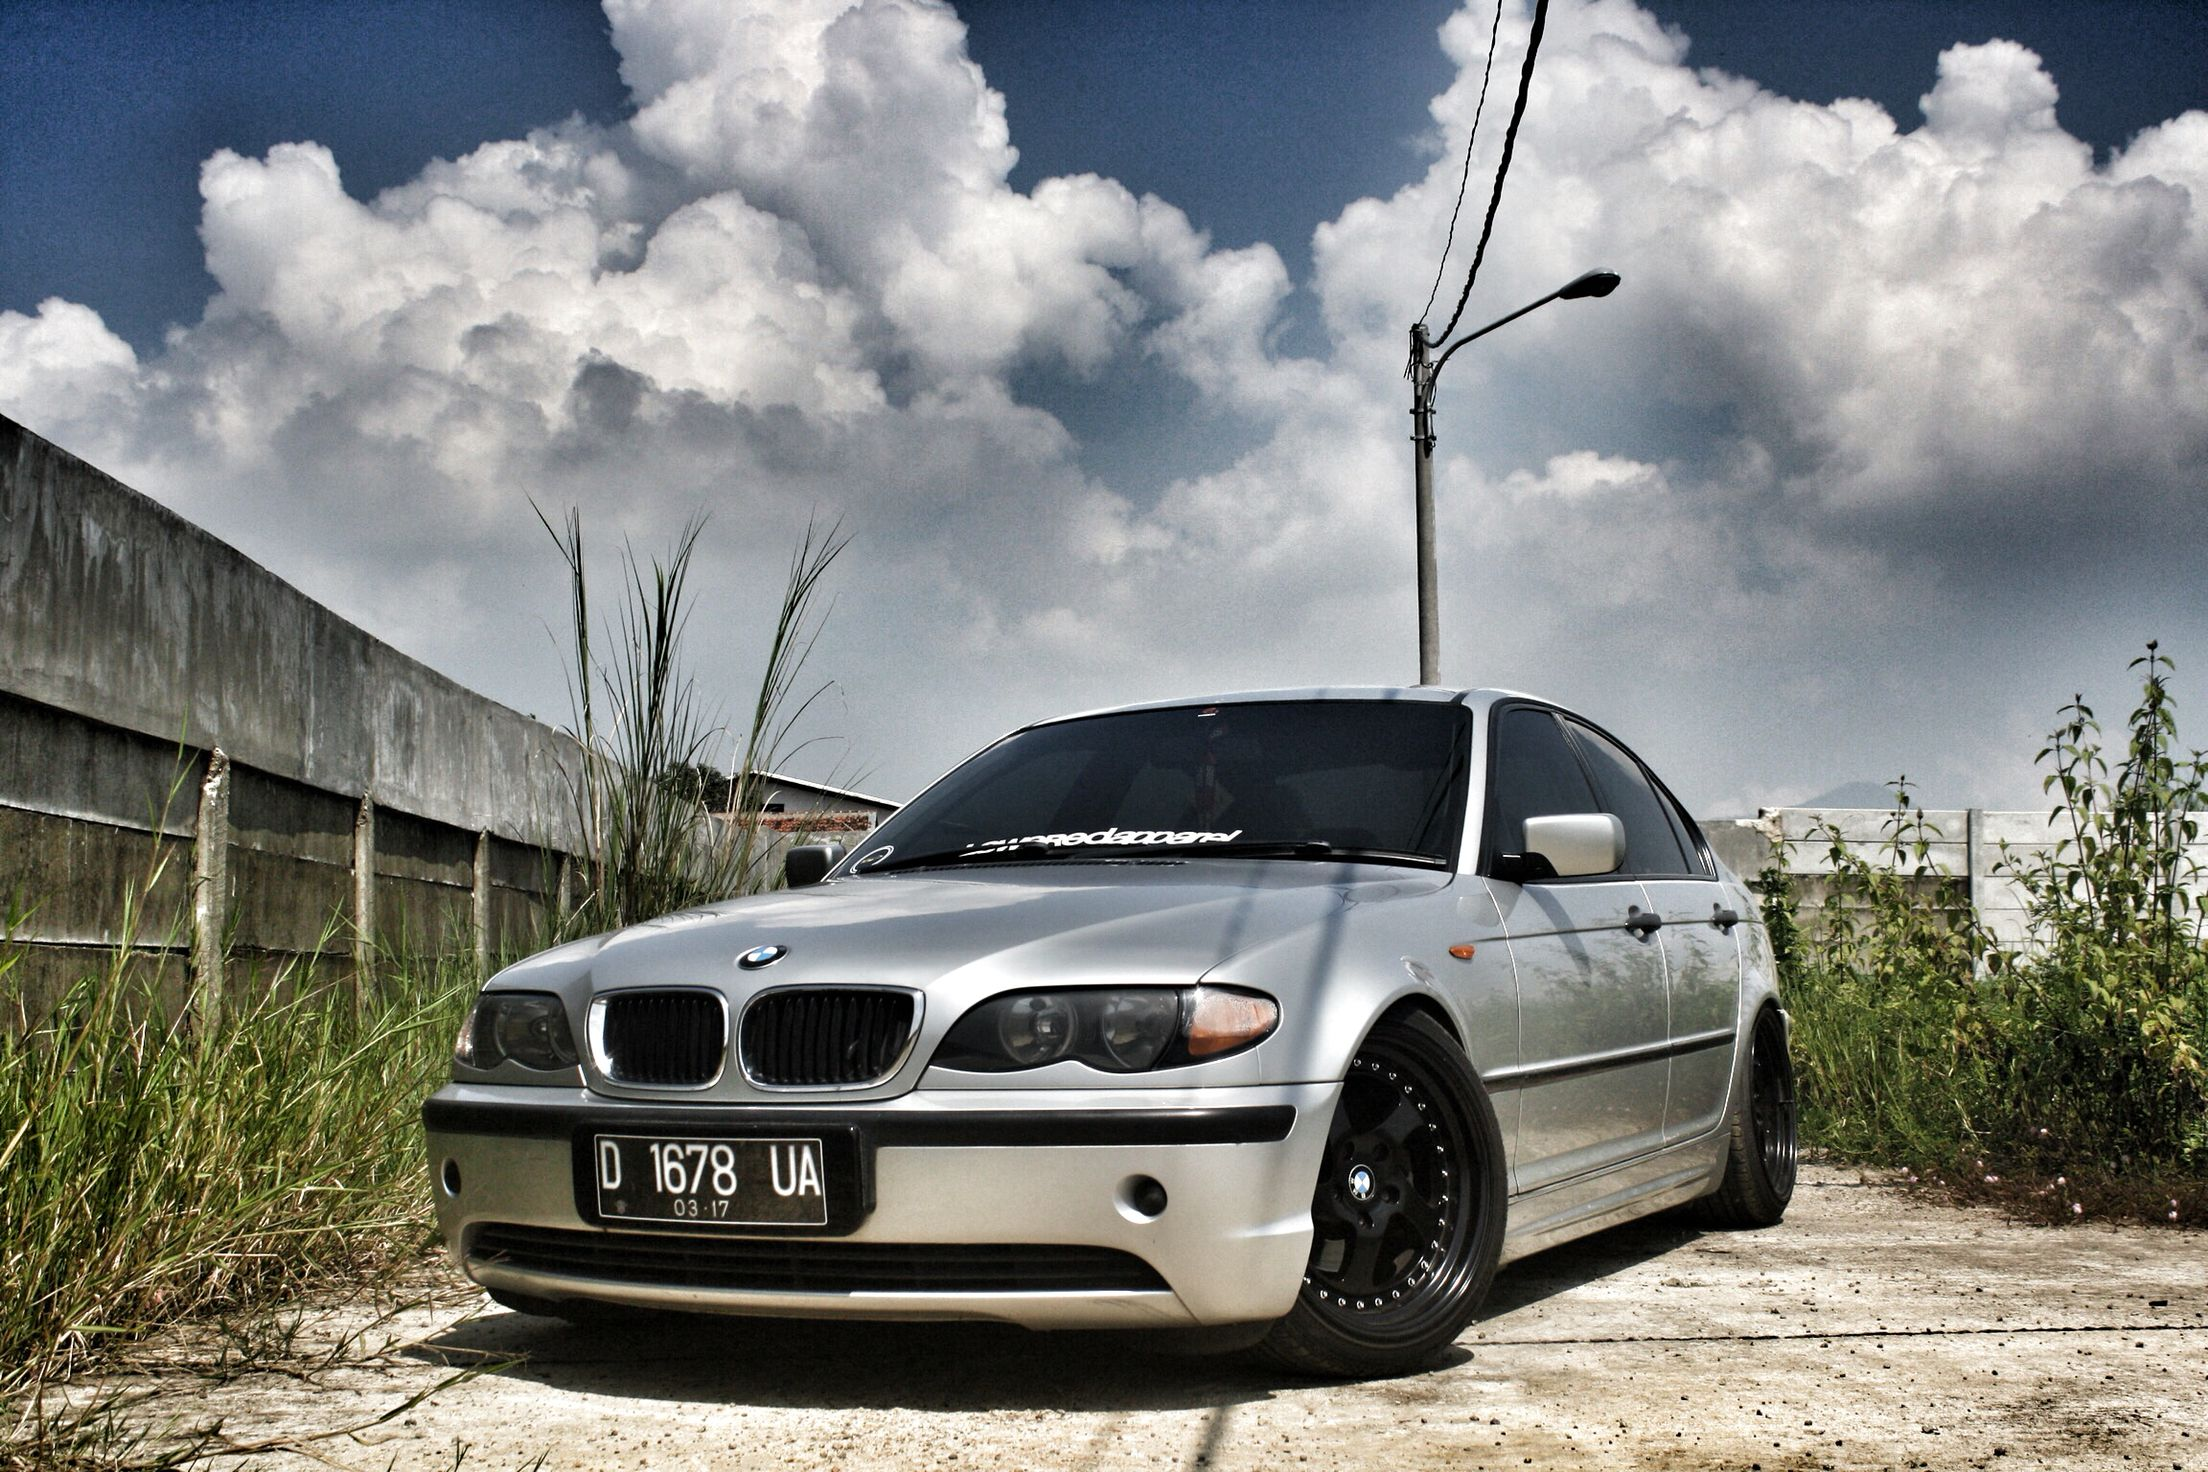 BMW E46 Facelift Lowered